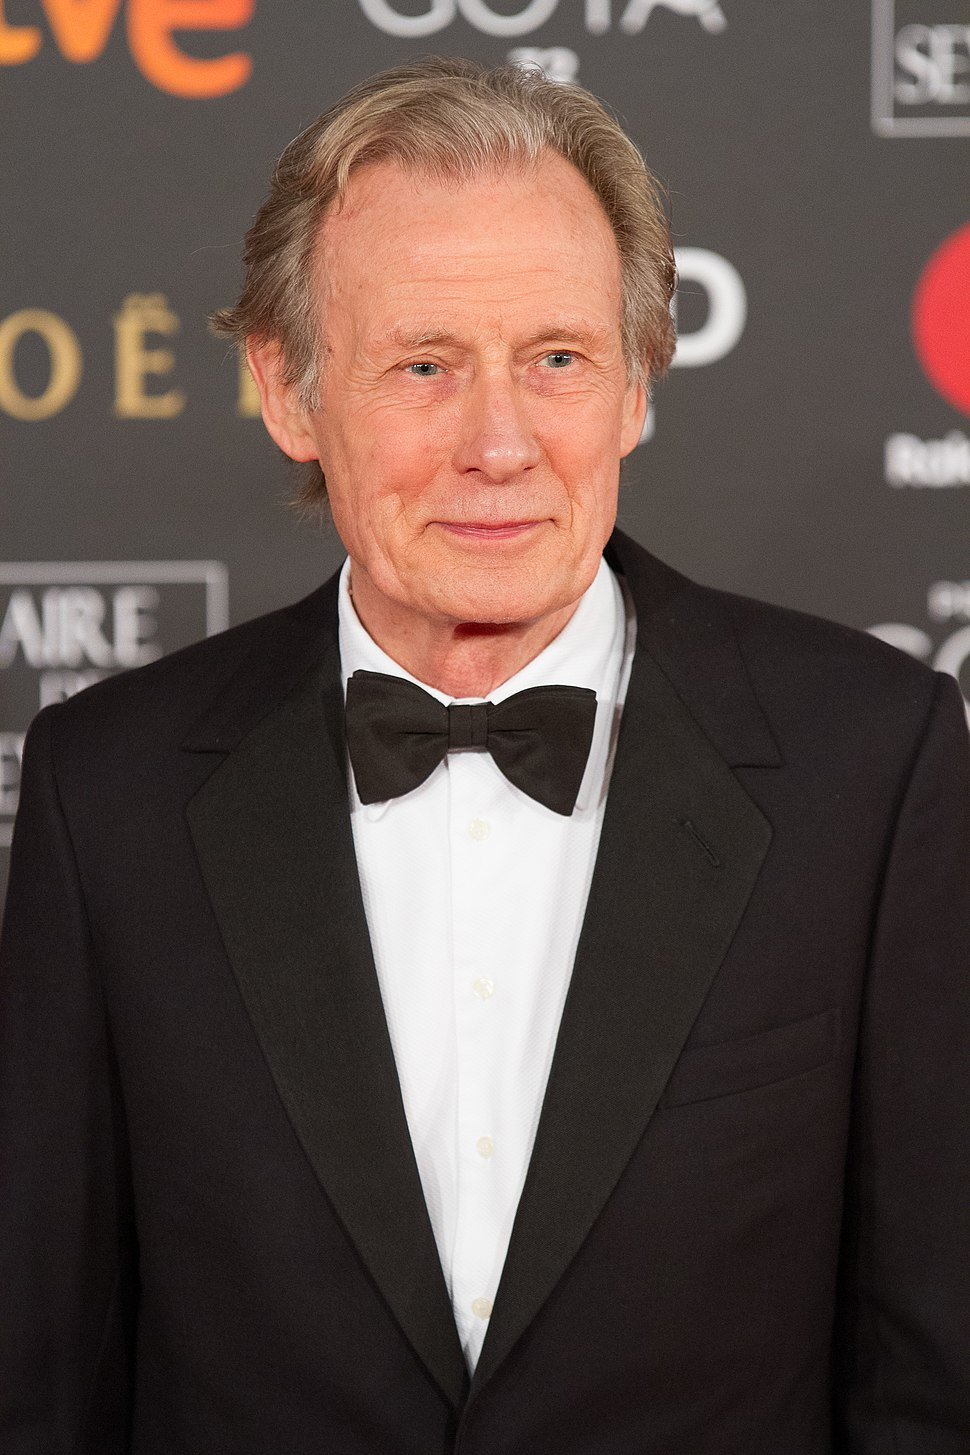 Premios Goya 2018 - Bill Nighy 02